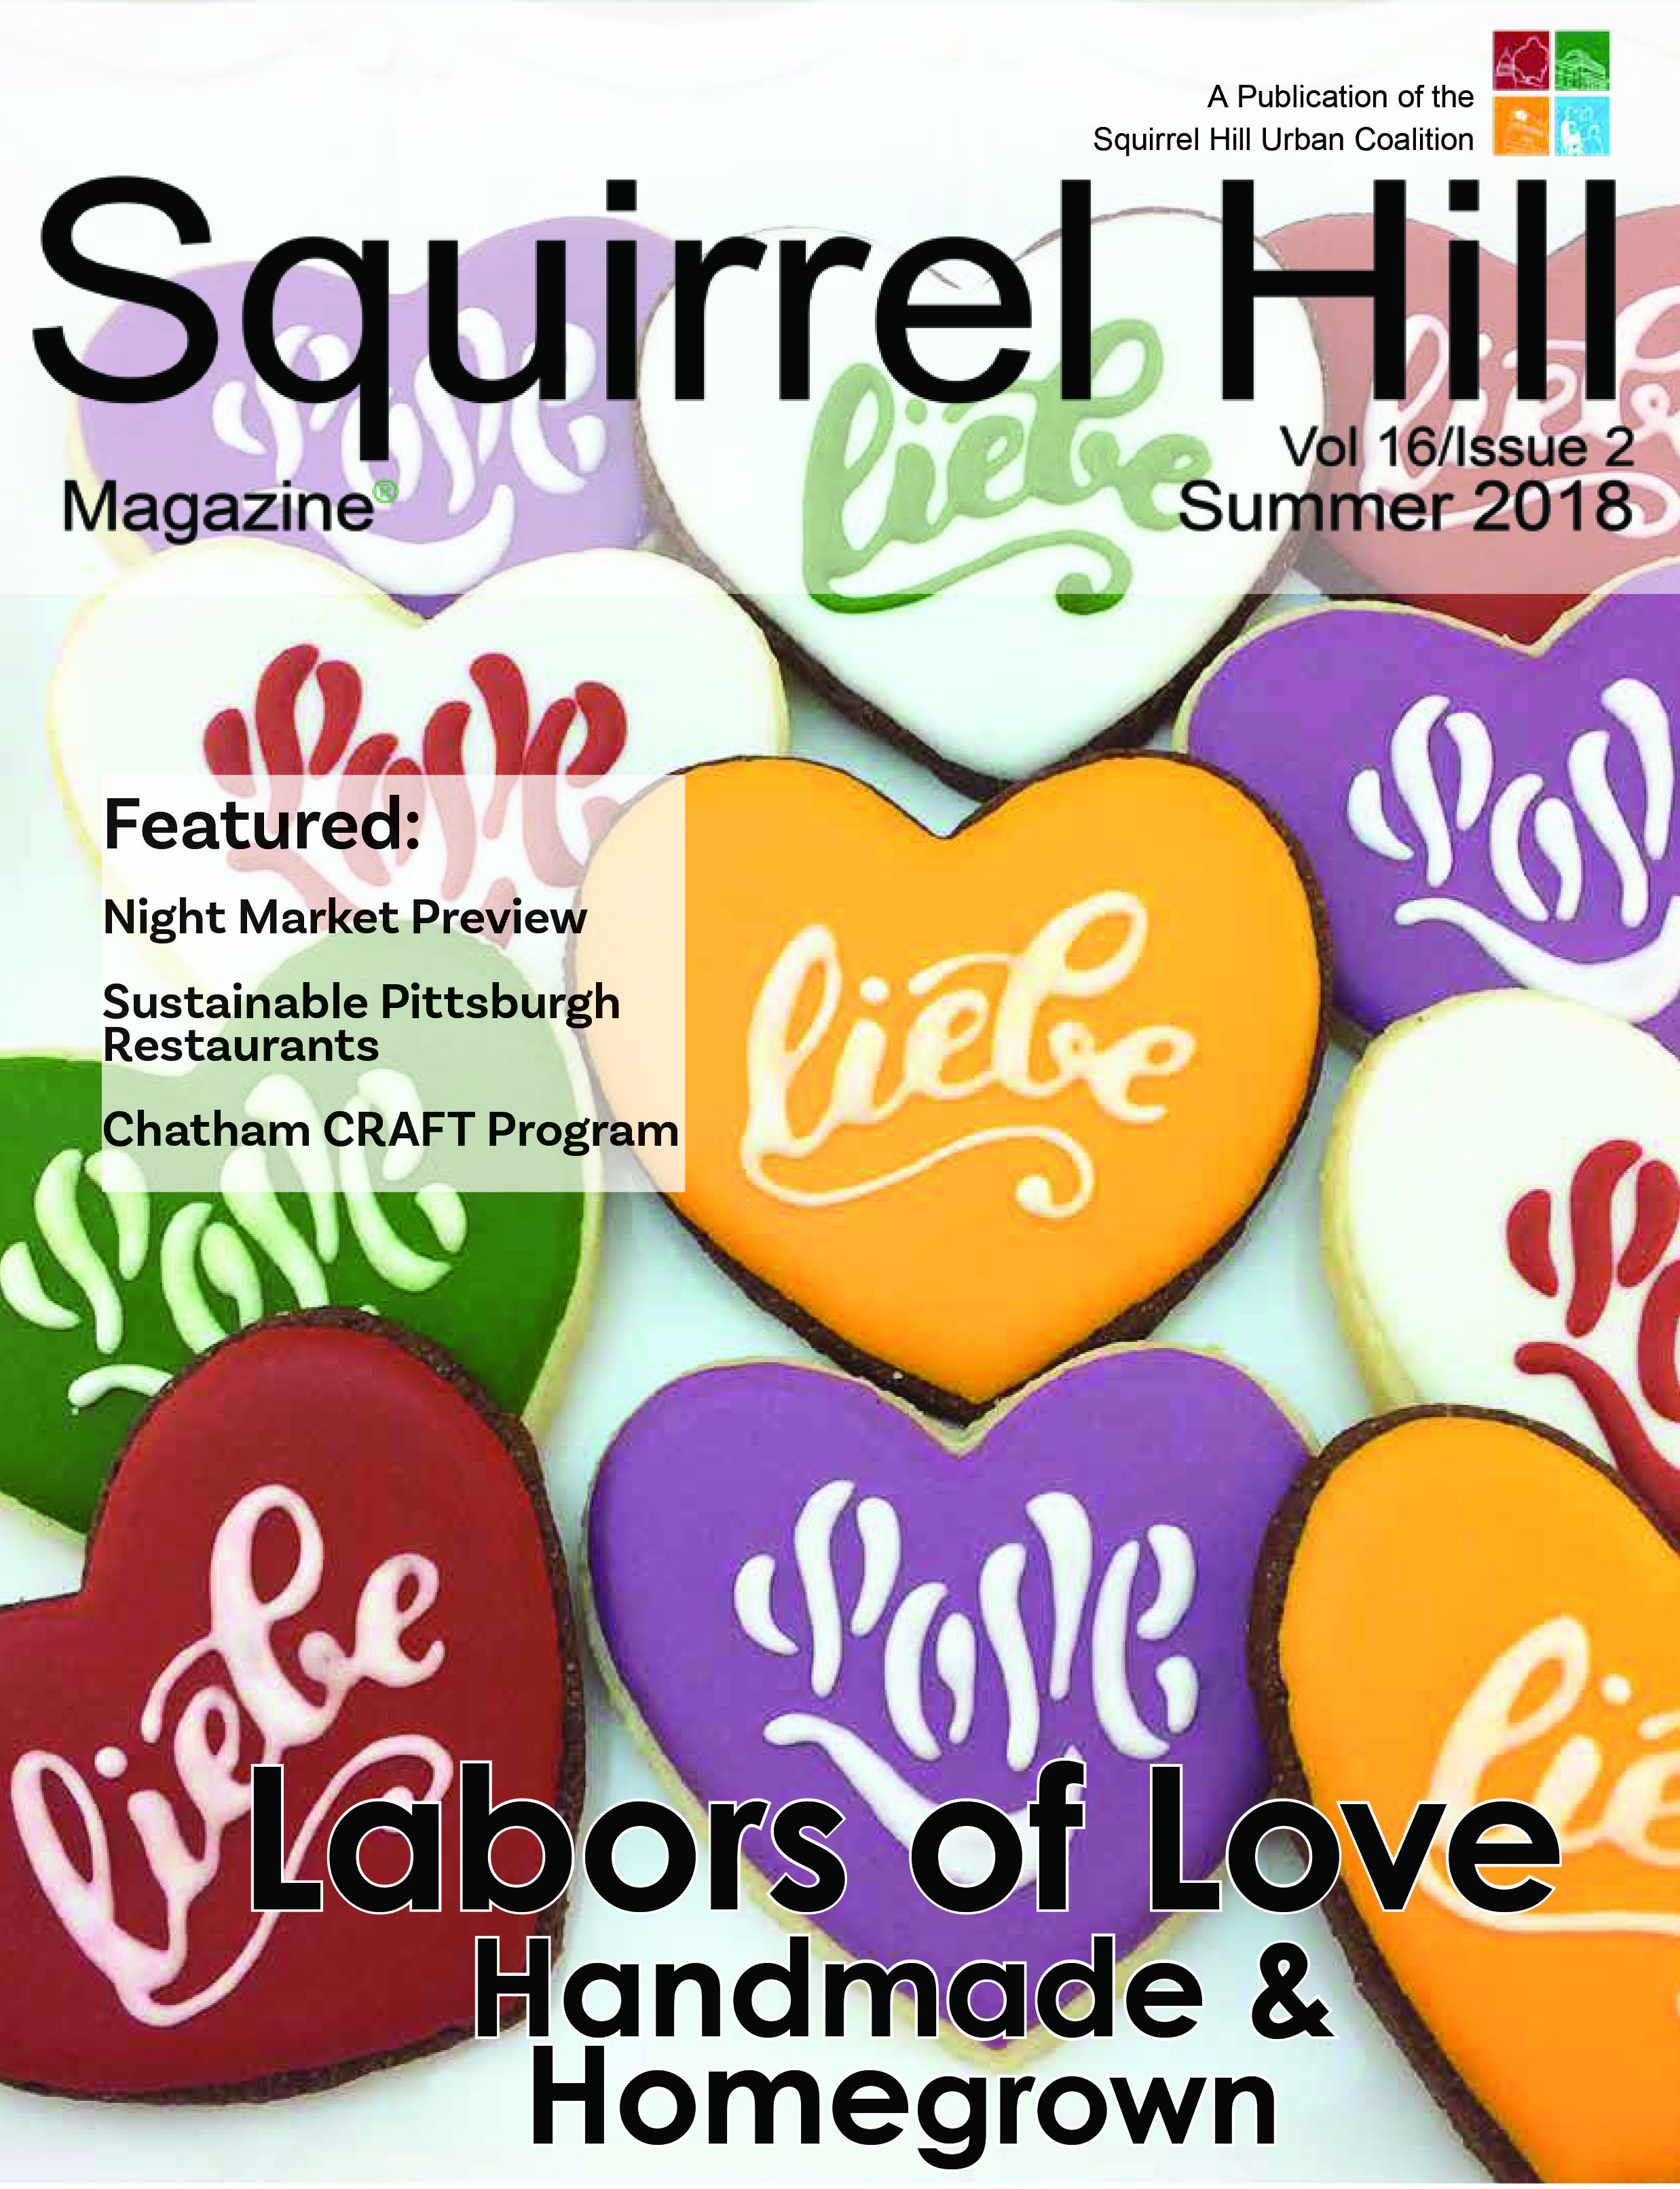 Squirrel Hill Magazine Summer 2018